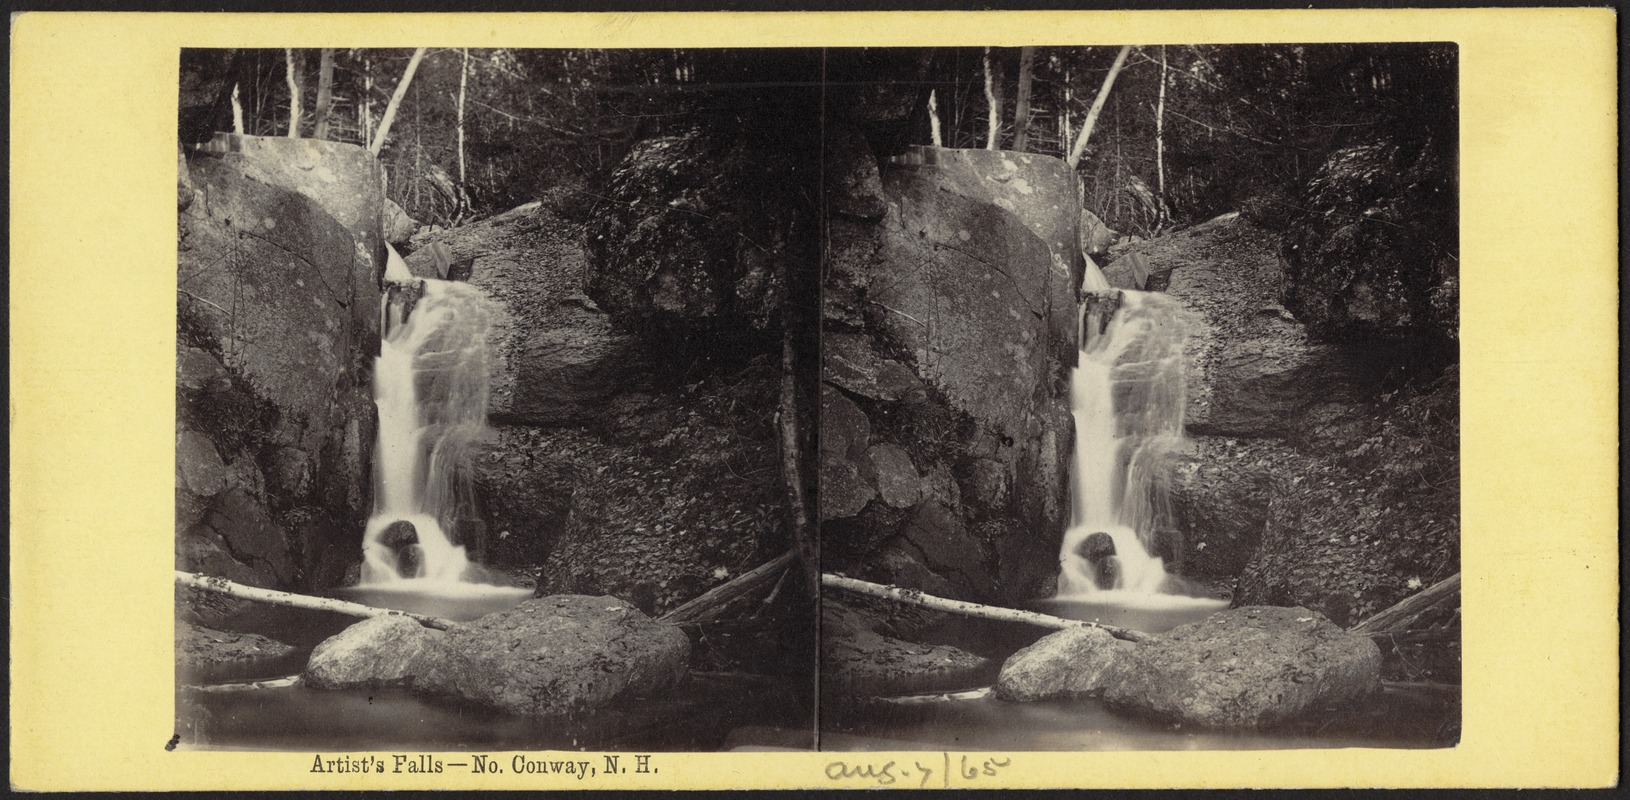 Artist's Falls - No. Conway, N. H.